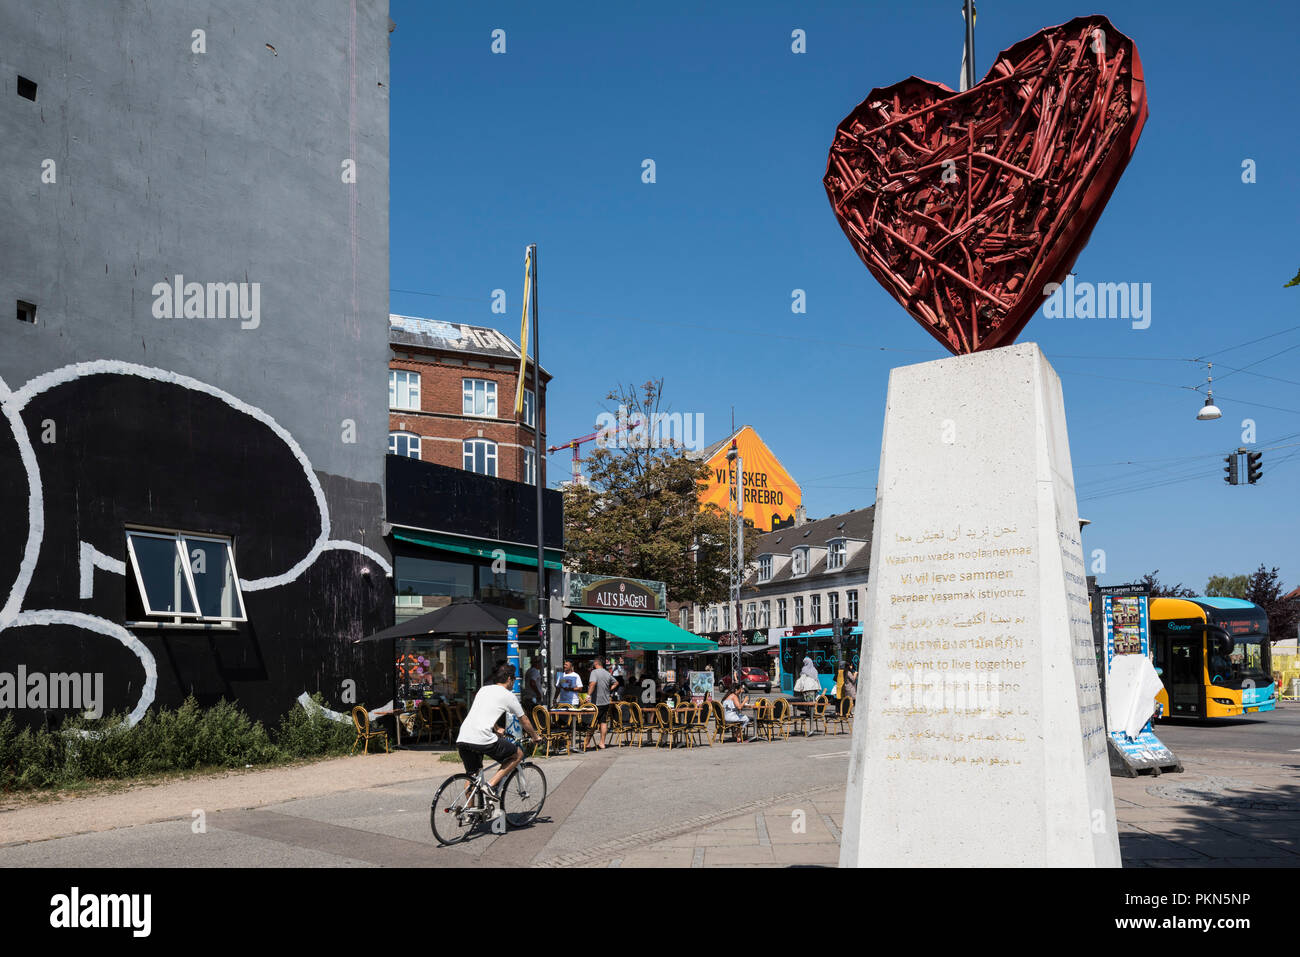 Copenhagen. Denmark. Nørrebro district, Nørrebrogade/Aksel Larsens Plads, with sculpture titled Farewell to the Weapons / Nørrebro's Heart, 2010, by a - Stock Image